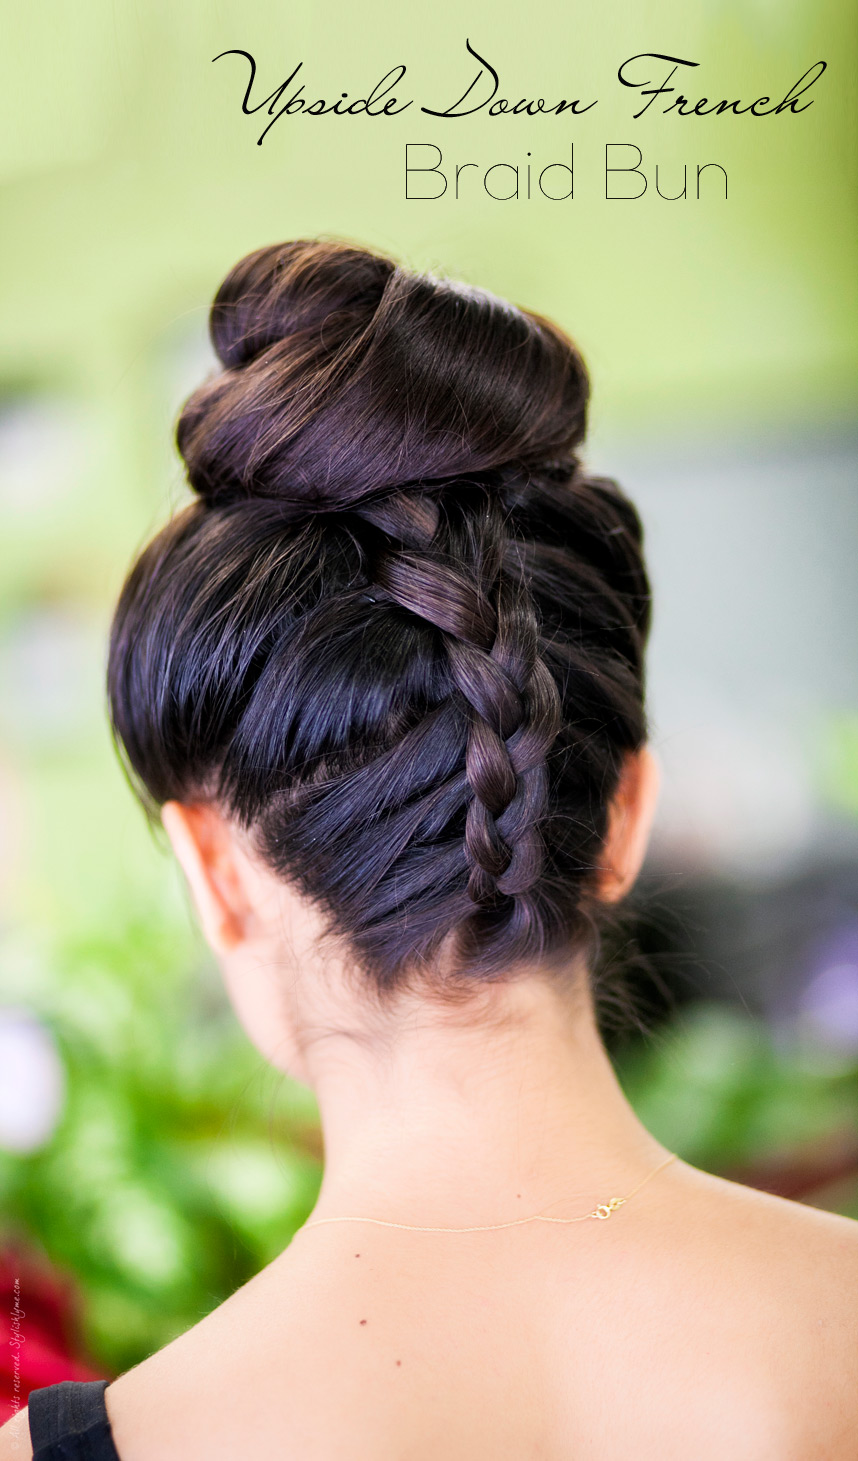 10 upside down french braid bun tutorial